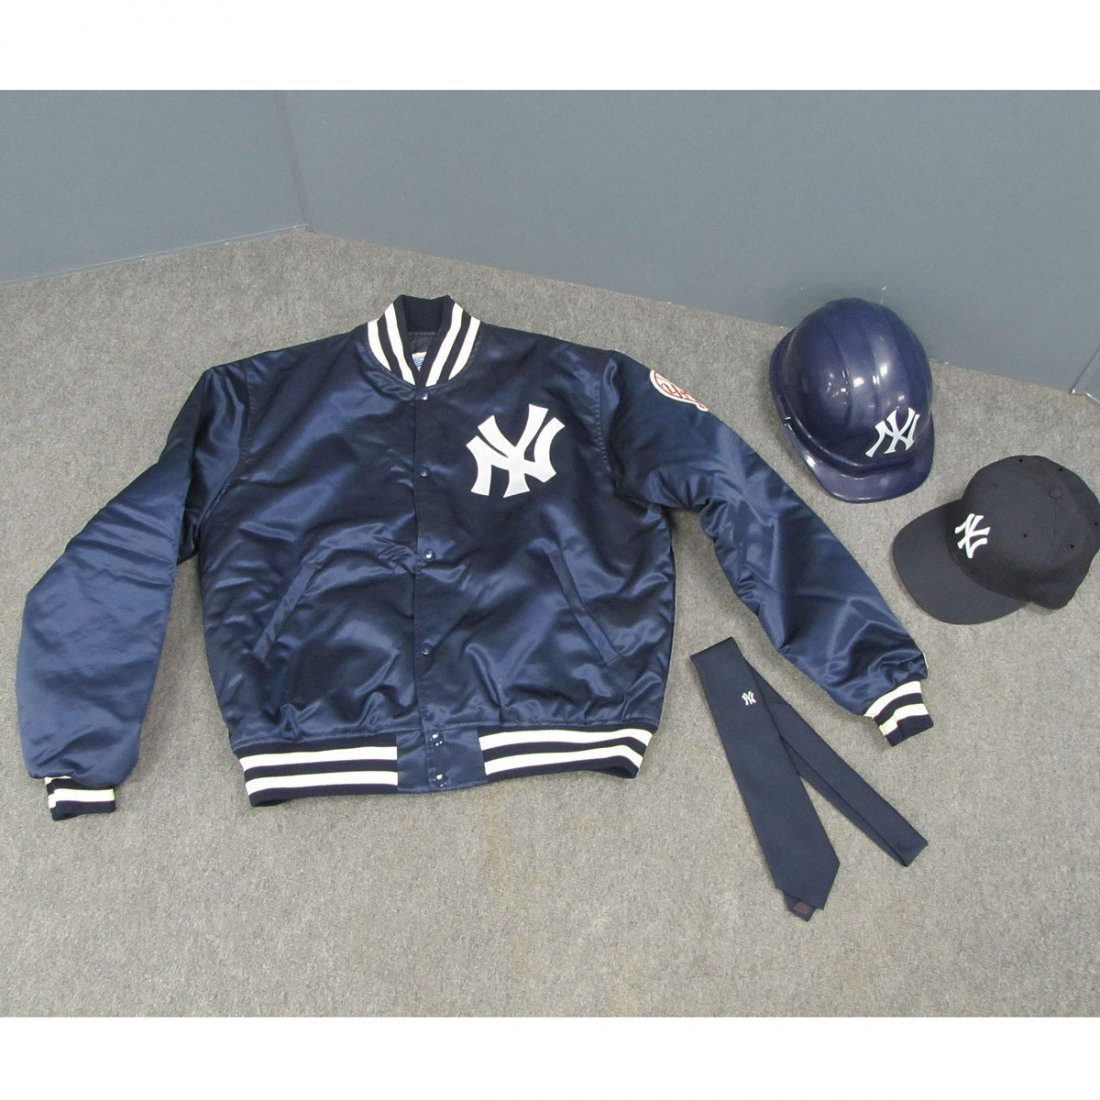 11: NEW YORK YANKEES LOT (3) INCLUDING JACKET, CAP